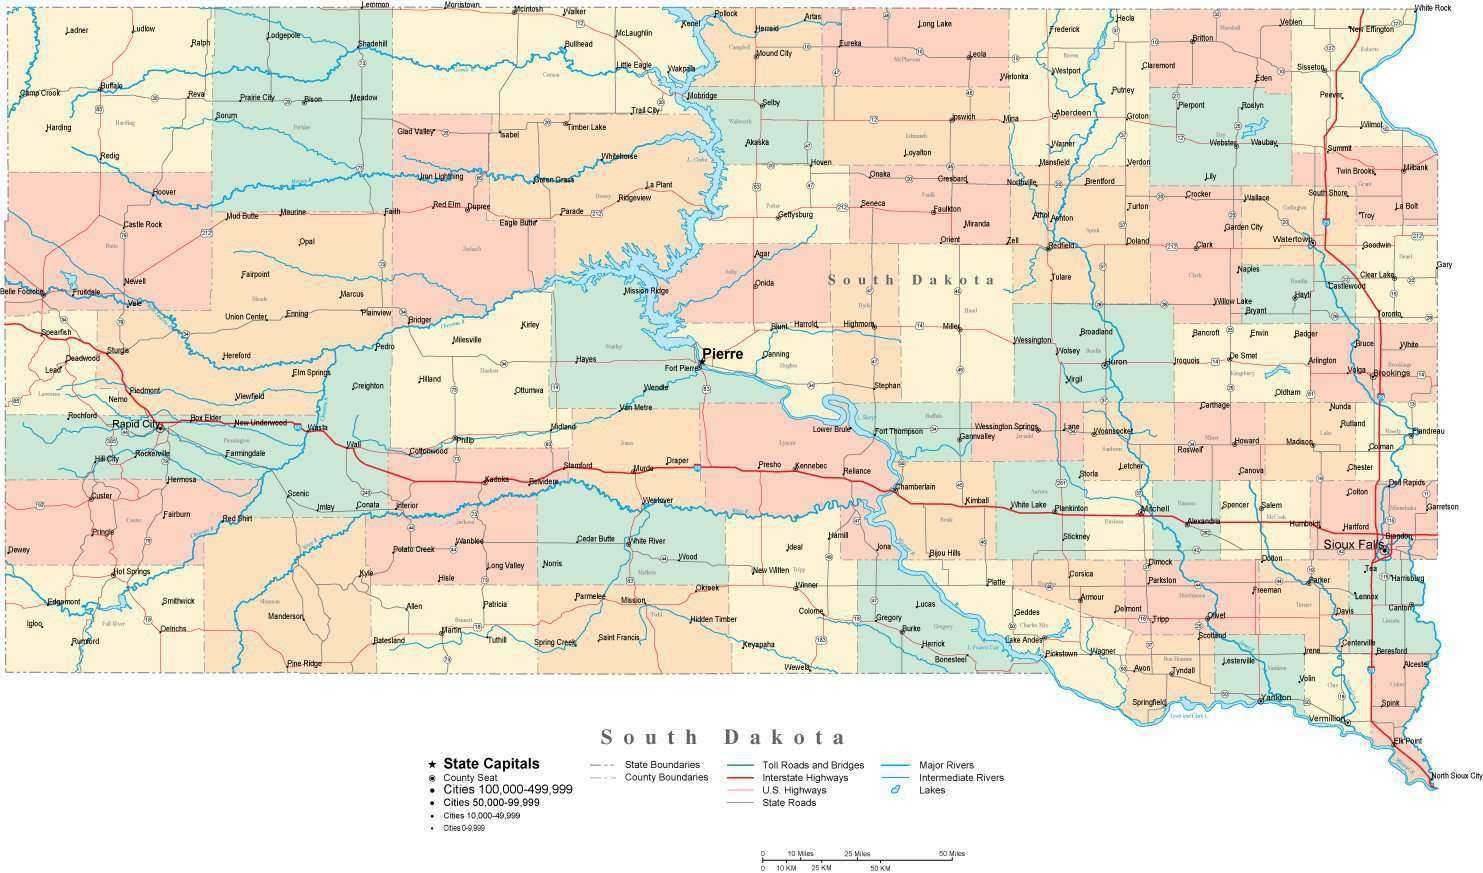 Picture of: South Dakota Digital Vector Map With Counties Major Cities Roads Rivers Lakes